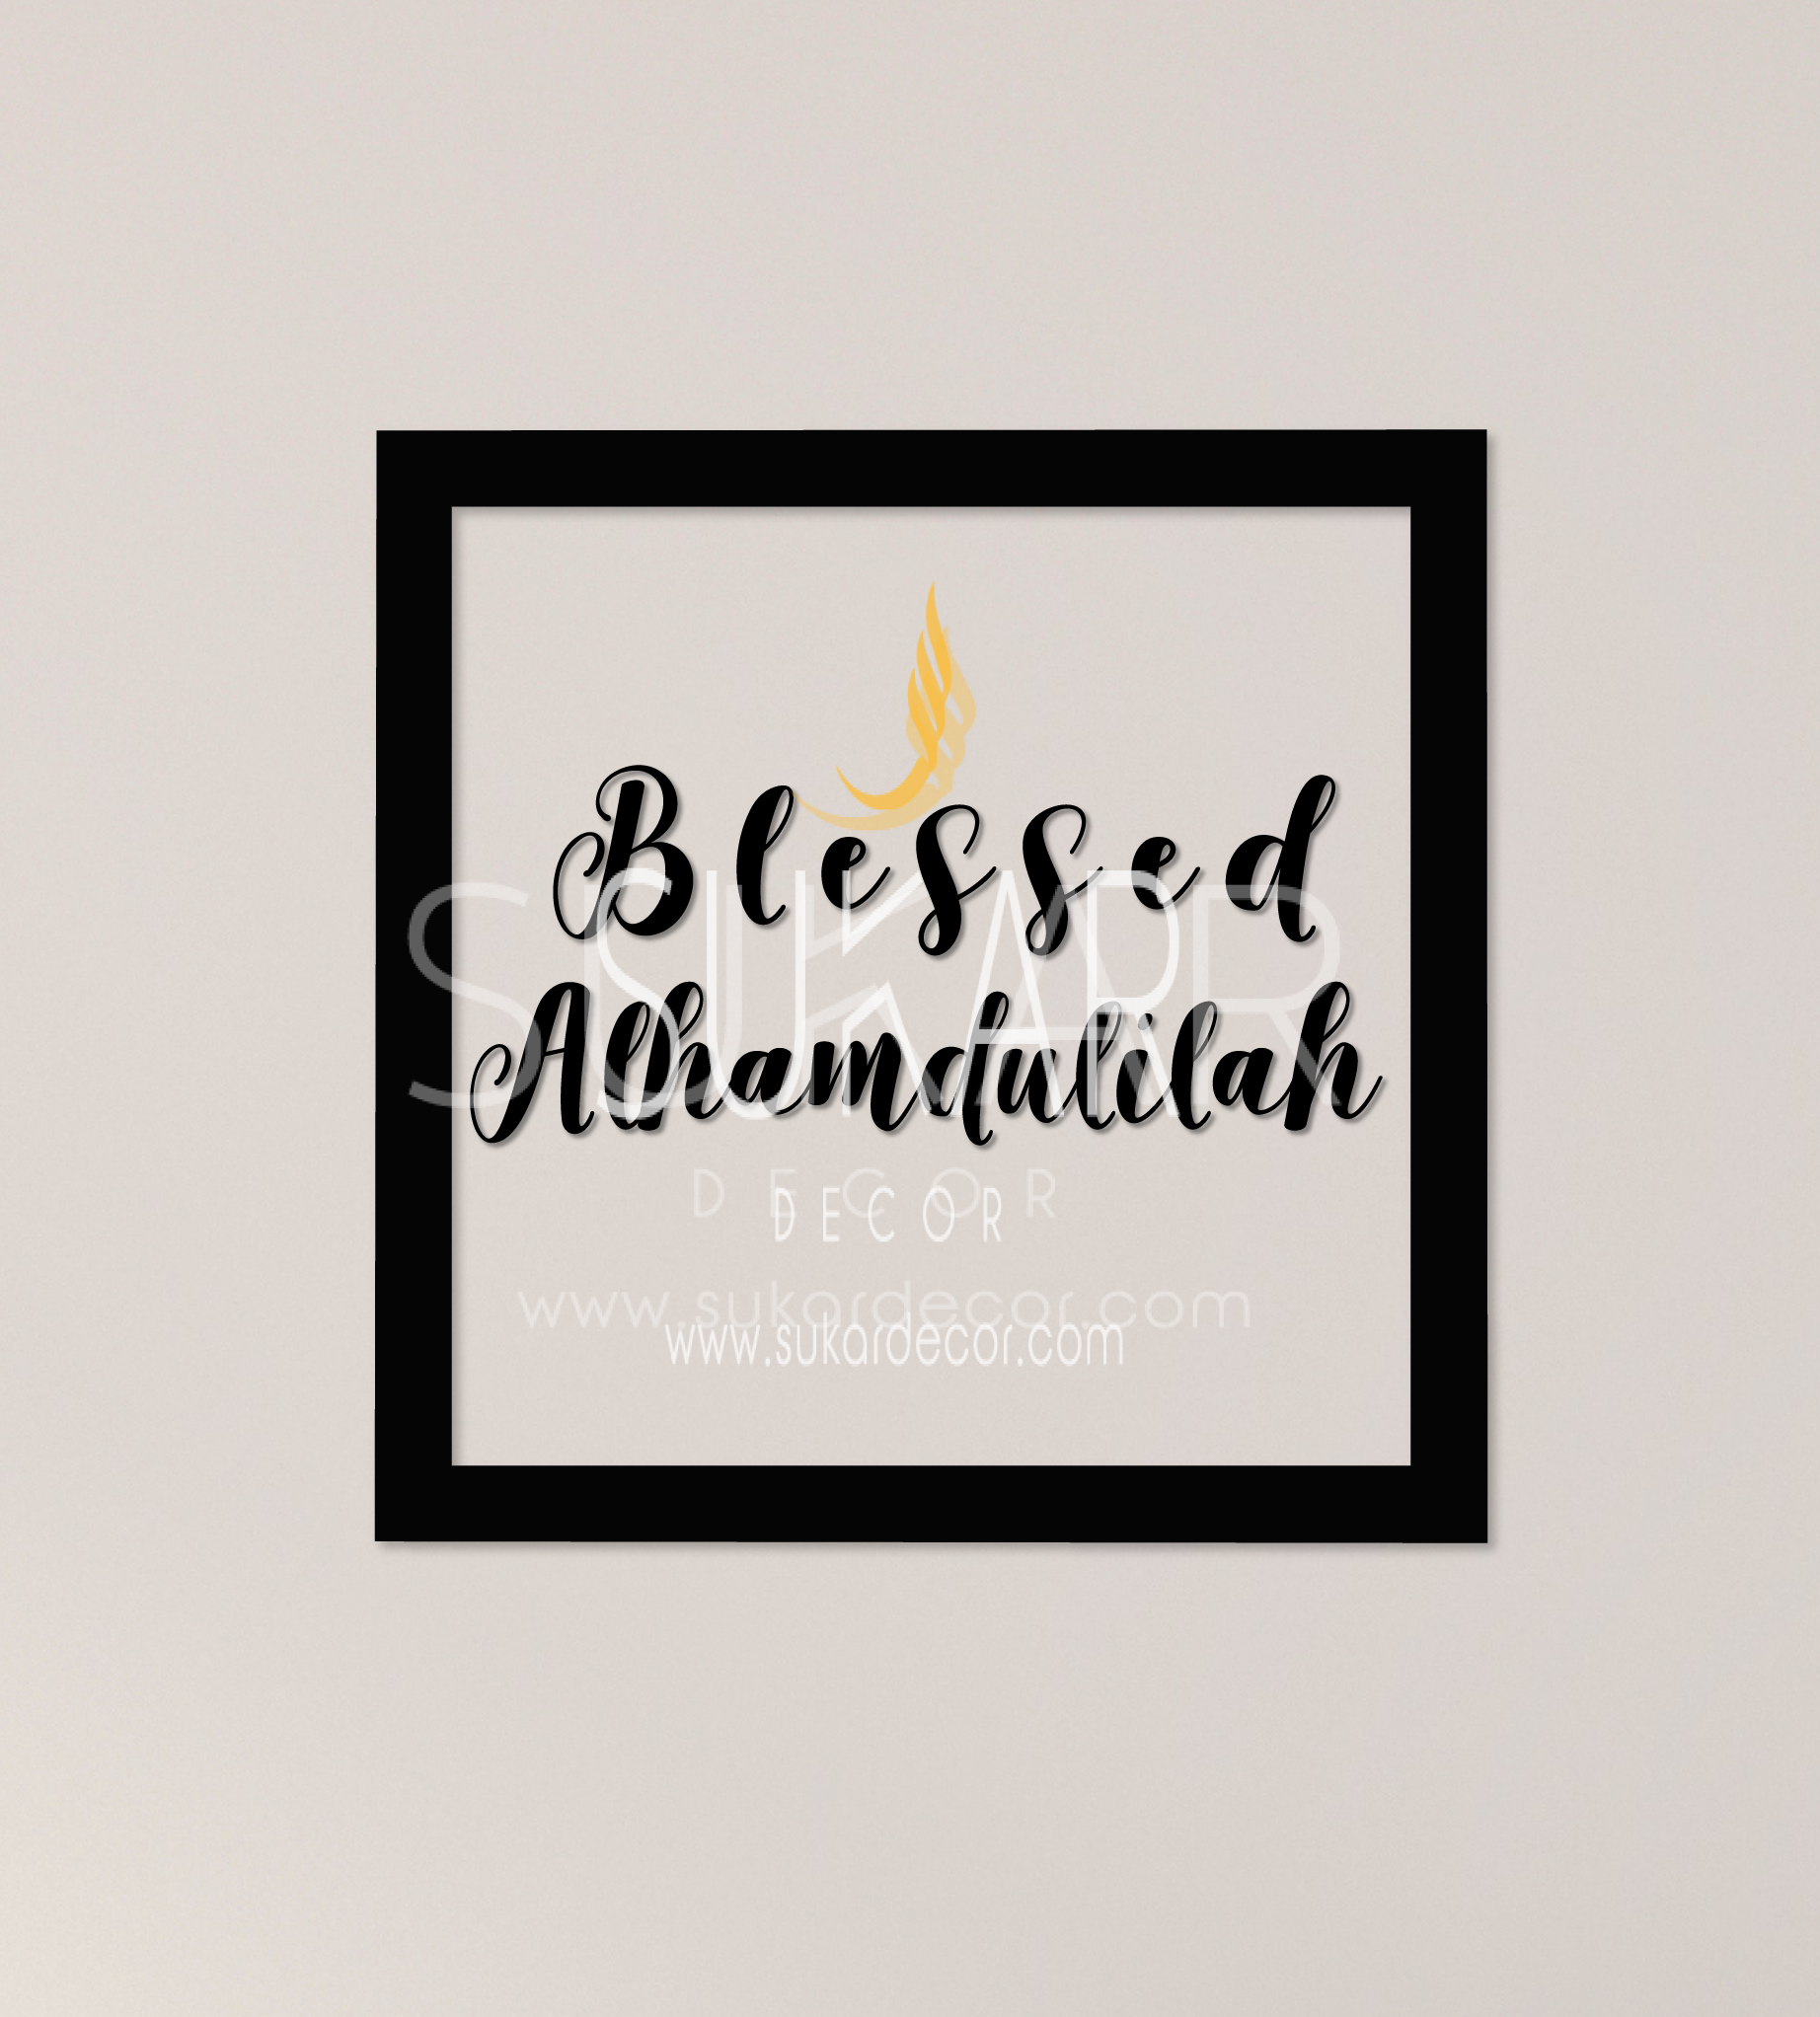 Blessed Steel Wall Decor For Preferred Blessed Alhamdulilah Islamic Wall Art – Sukar Decor Islamic Decor (View 19 of 20)